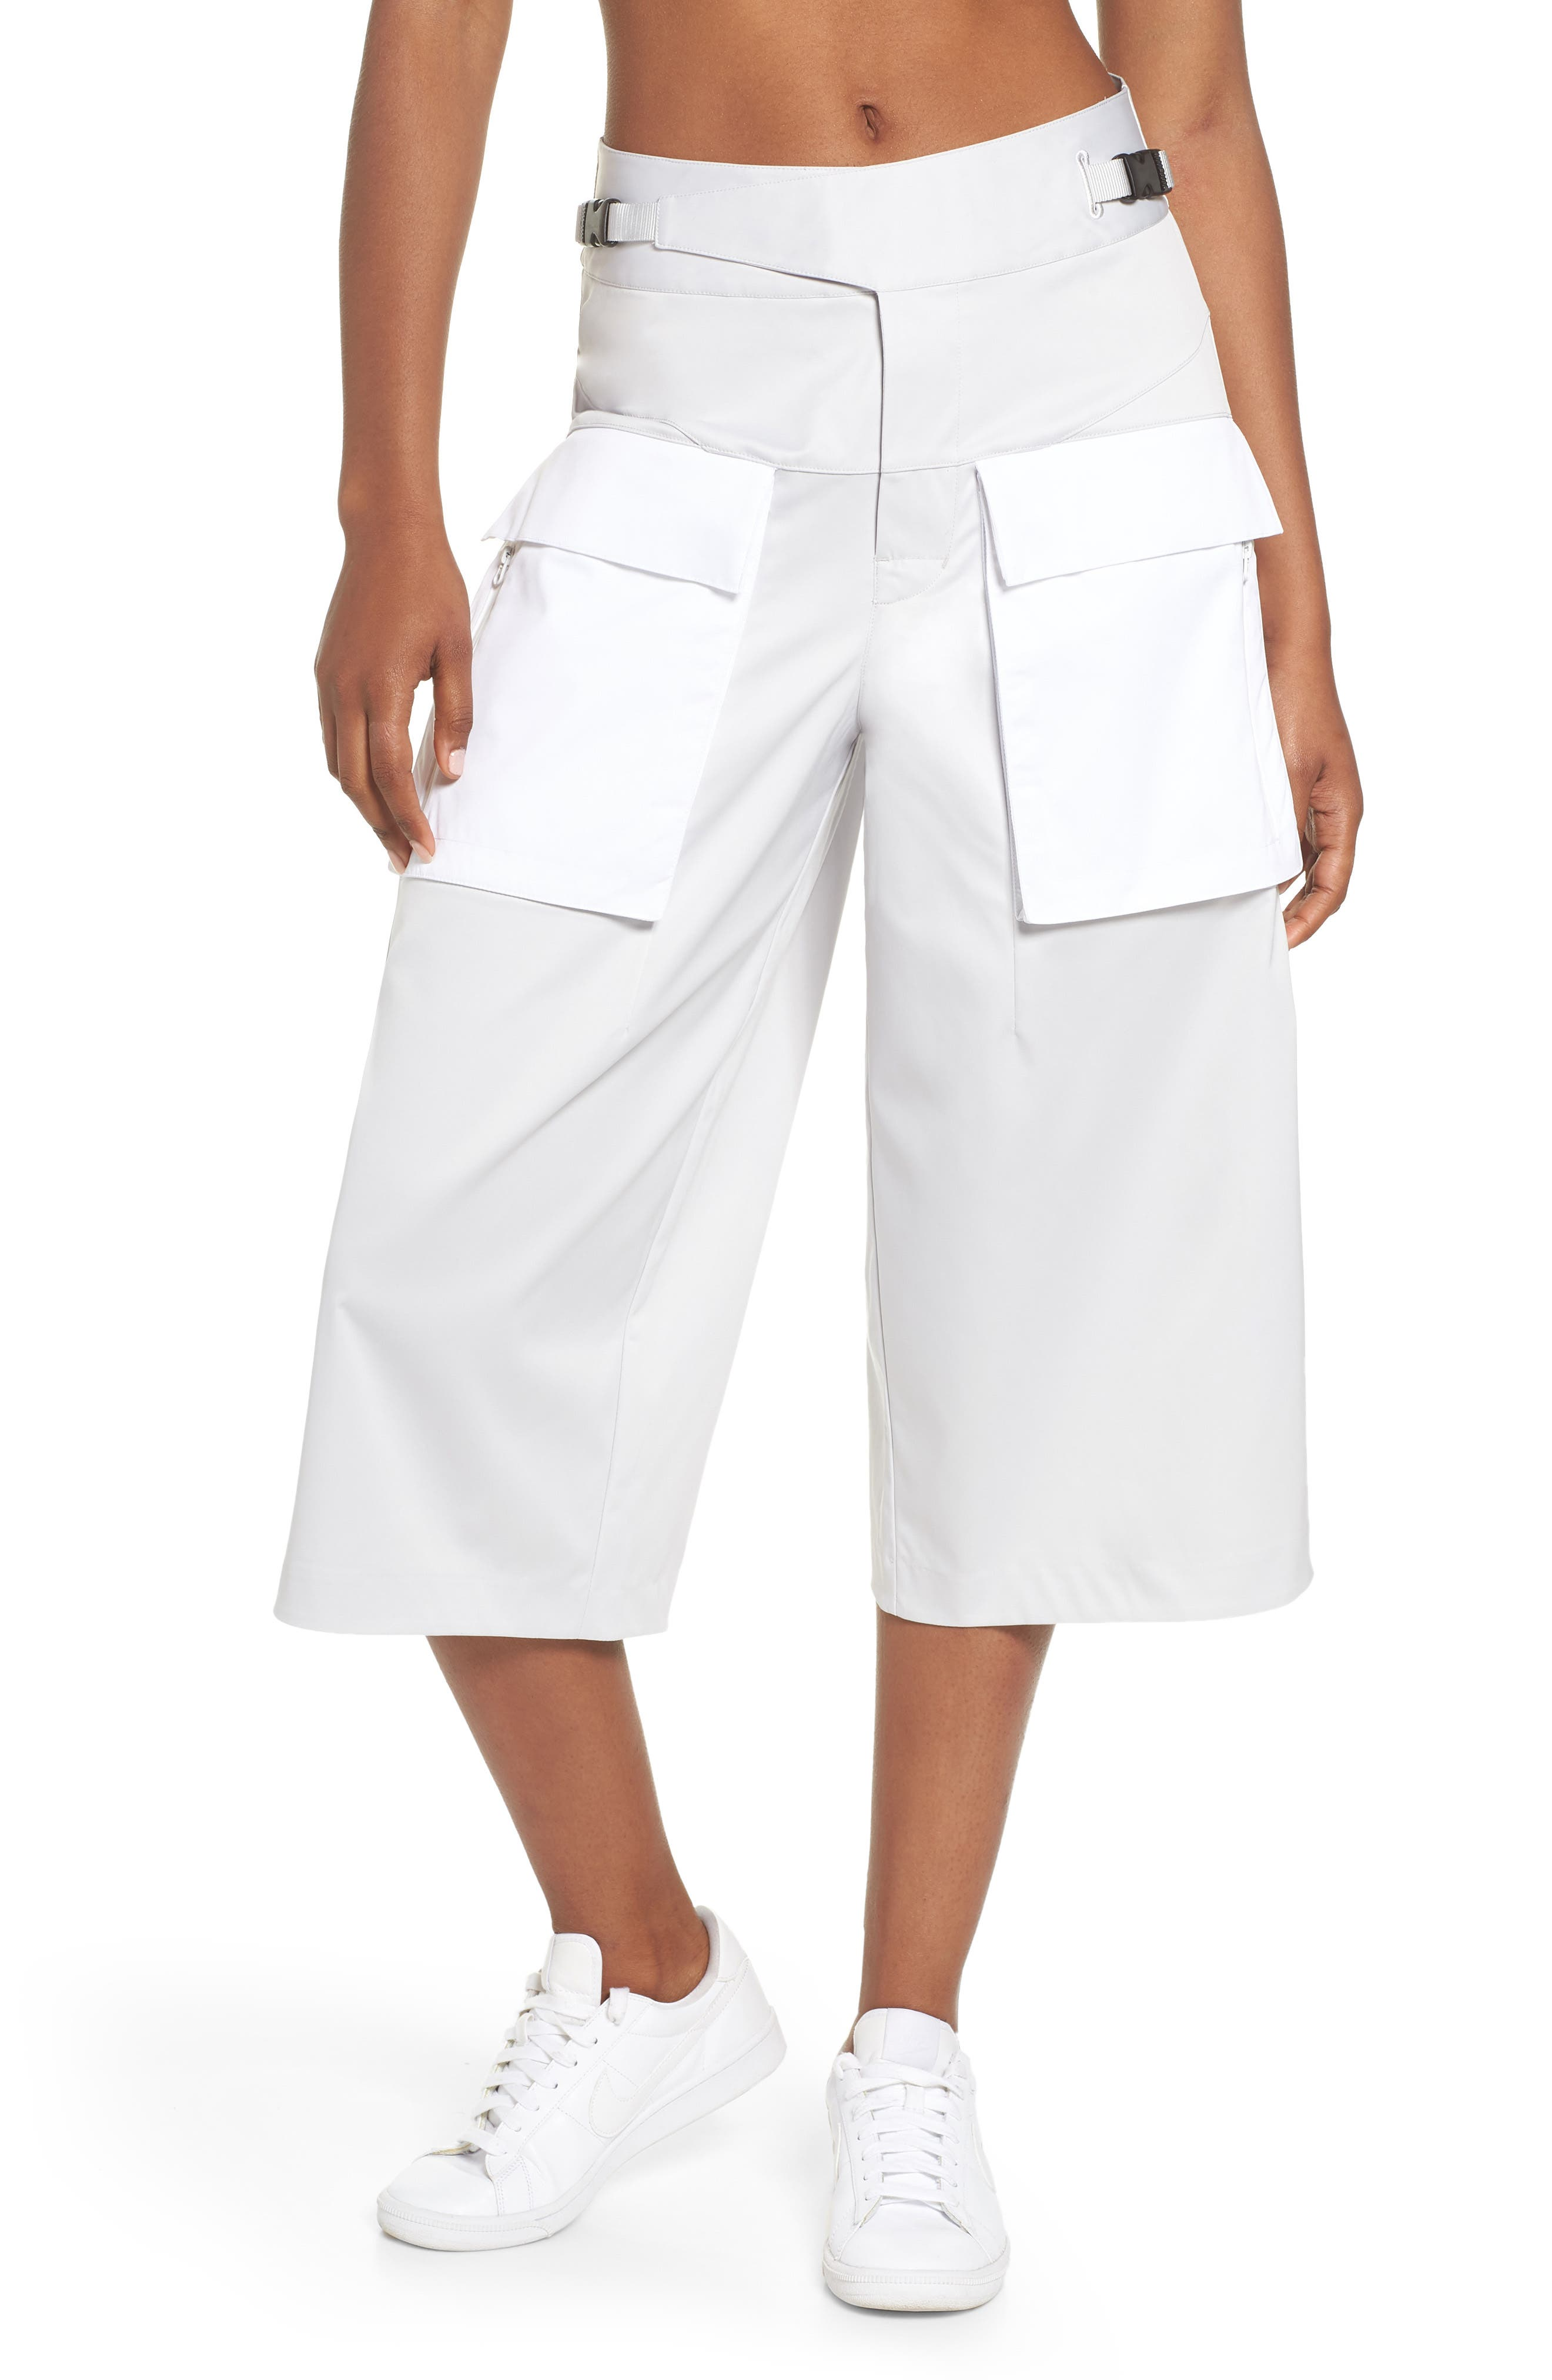 Utility Culottes,                             Main thumbnail 1, color,                             Vast Grey/ White/ Vast Grey